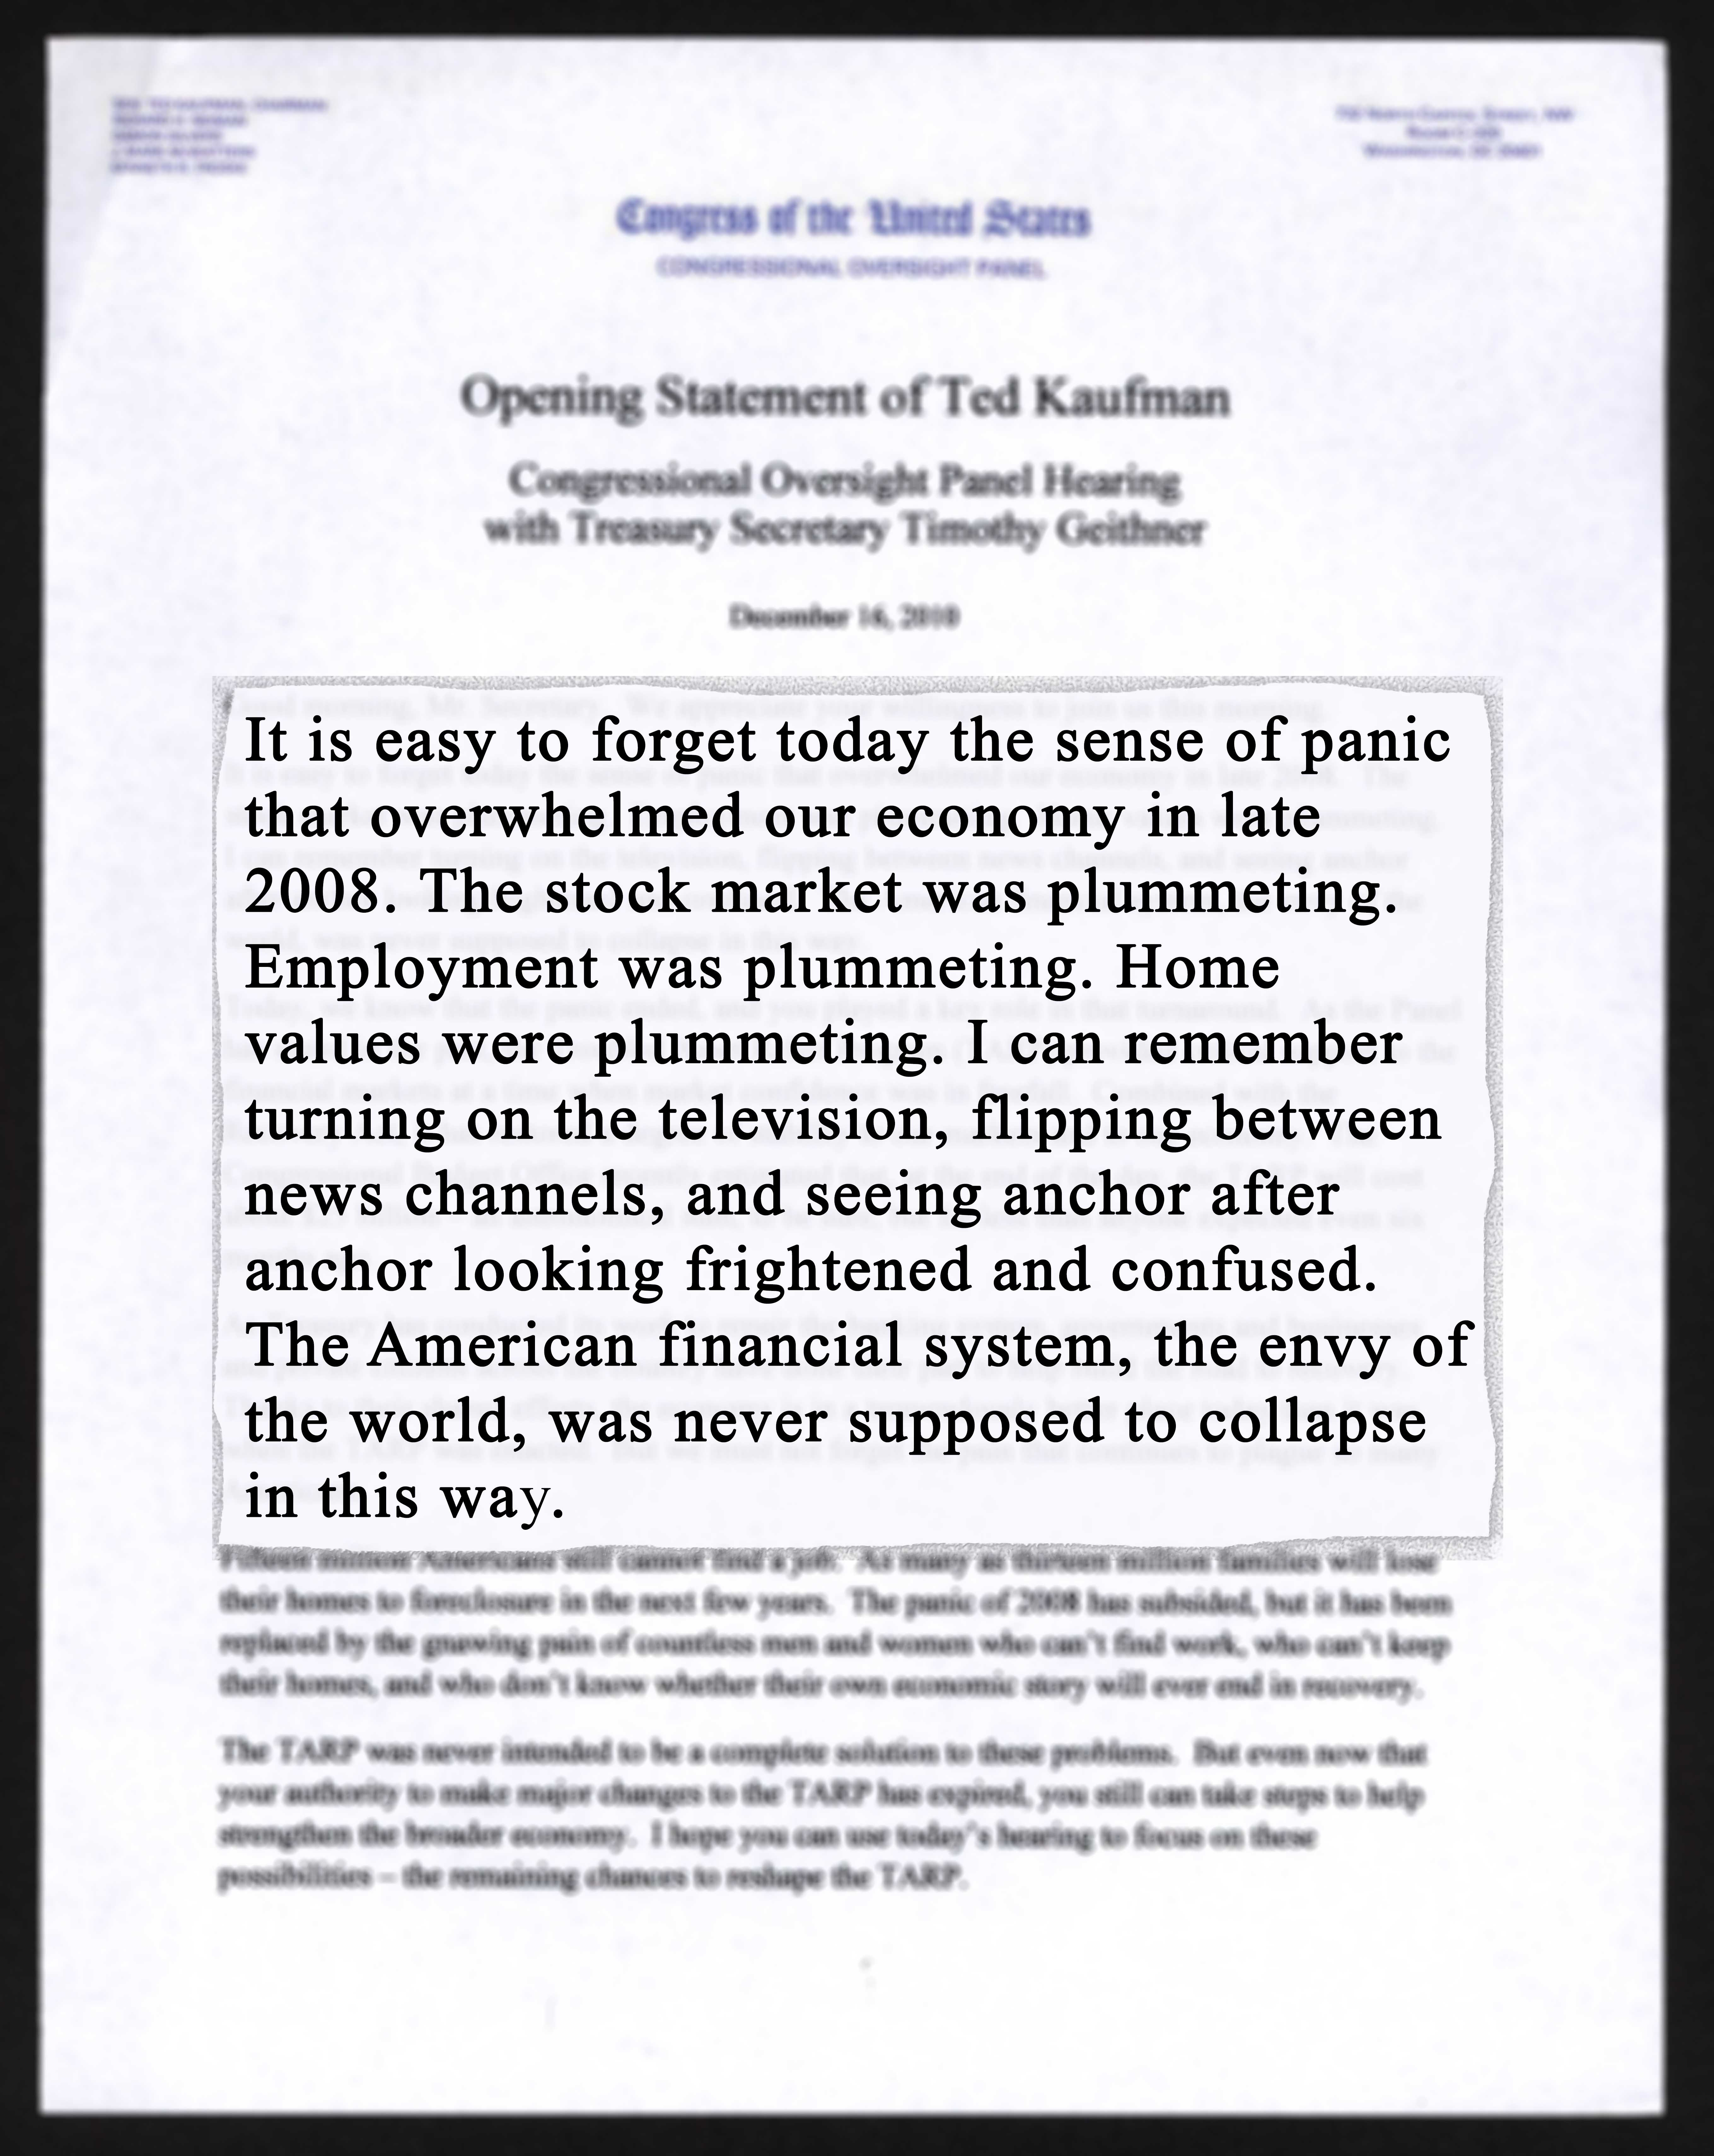 'Opening Statement of Ted Kaufman,' 2010 December 16